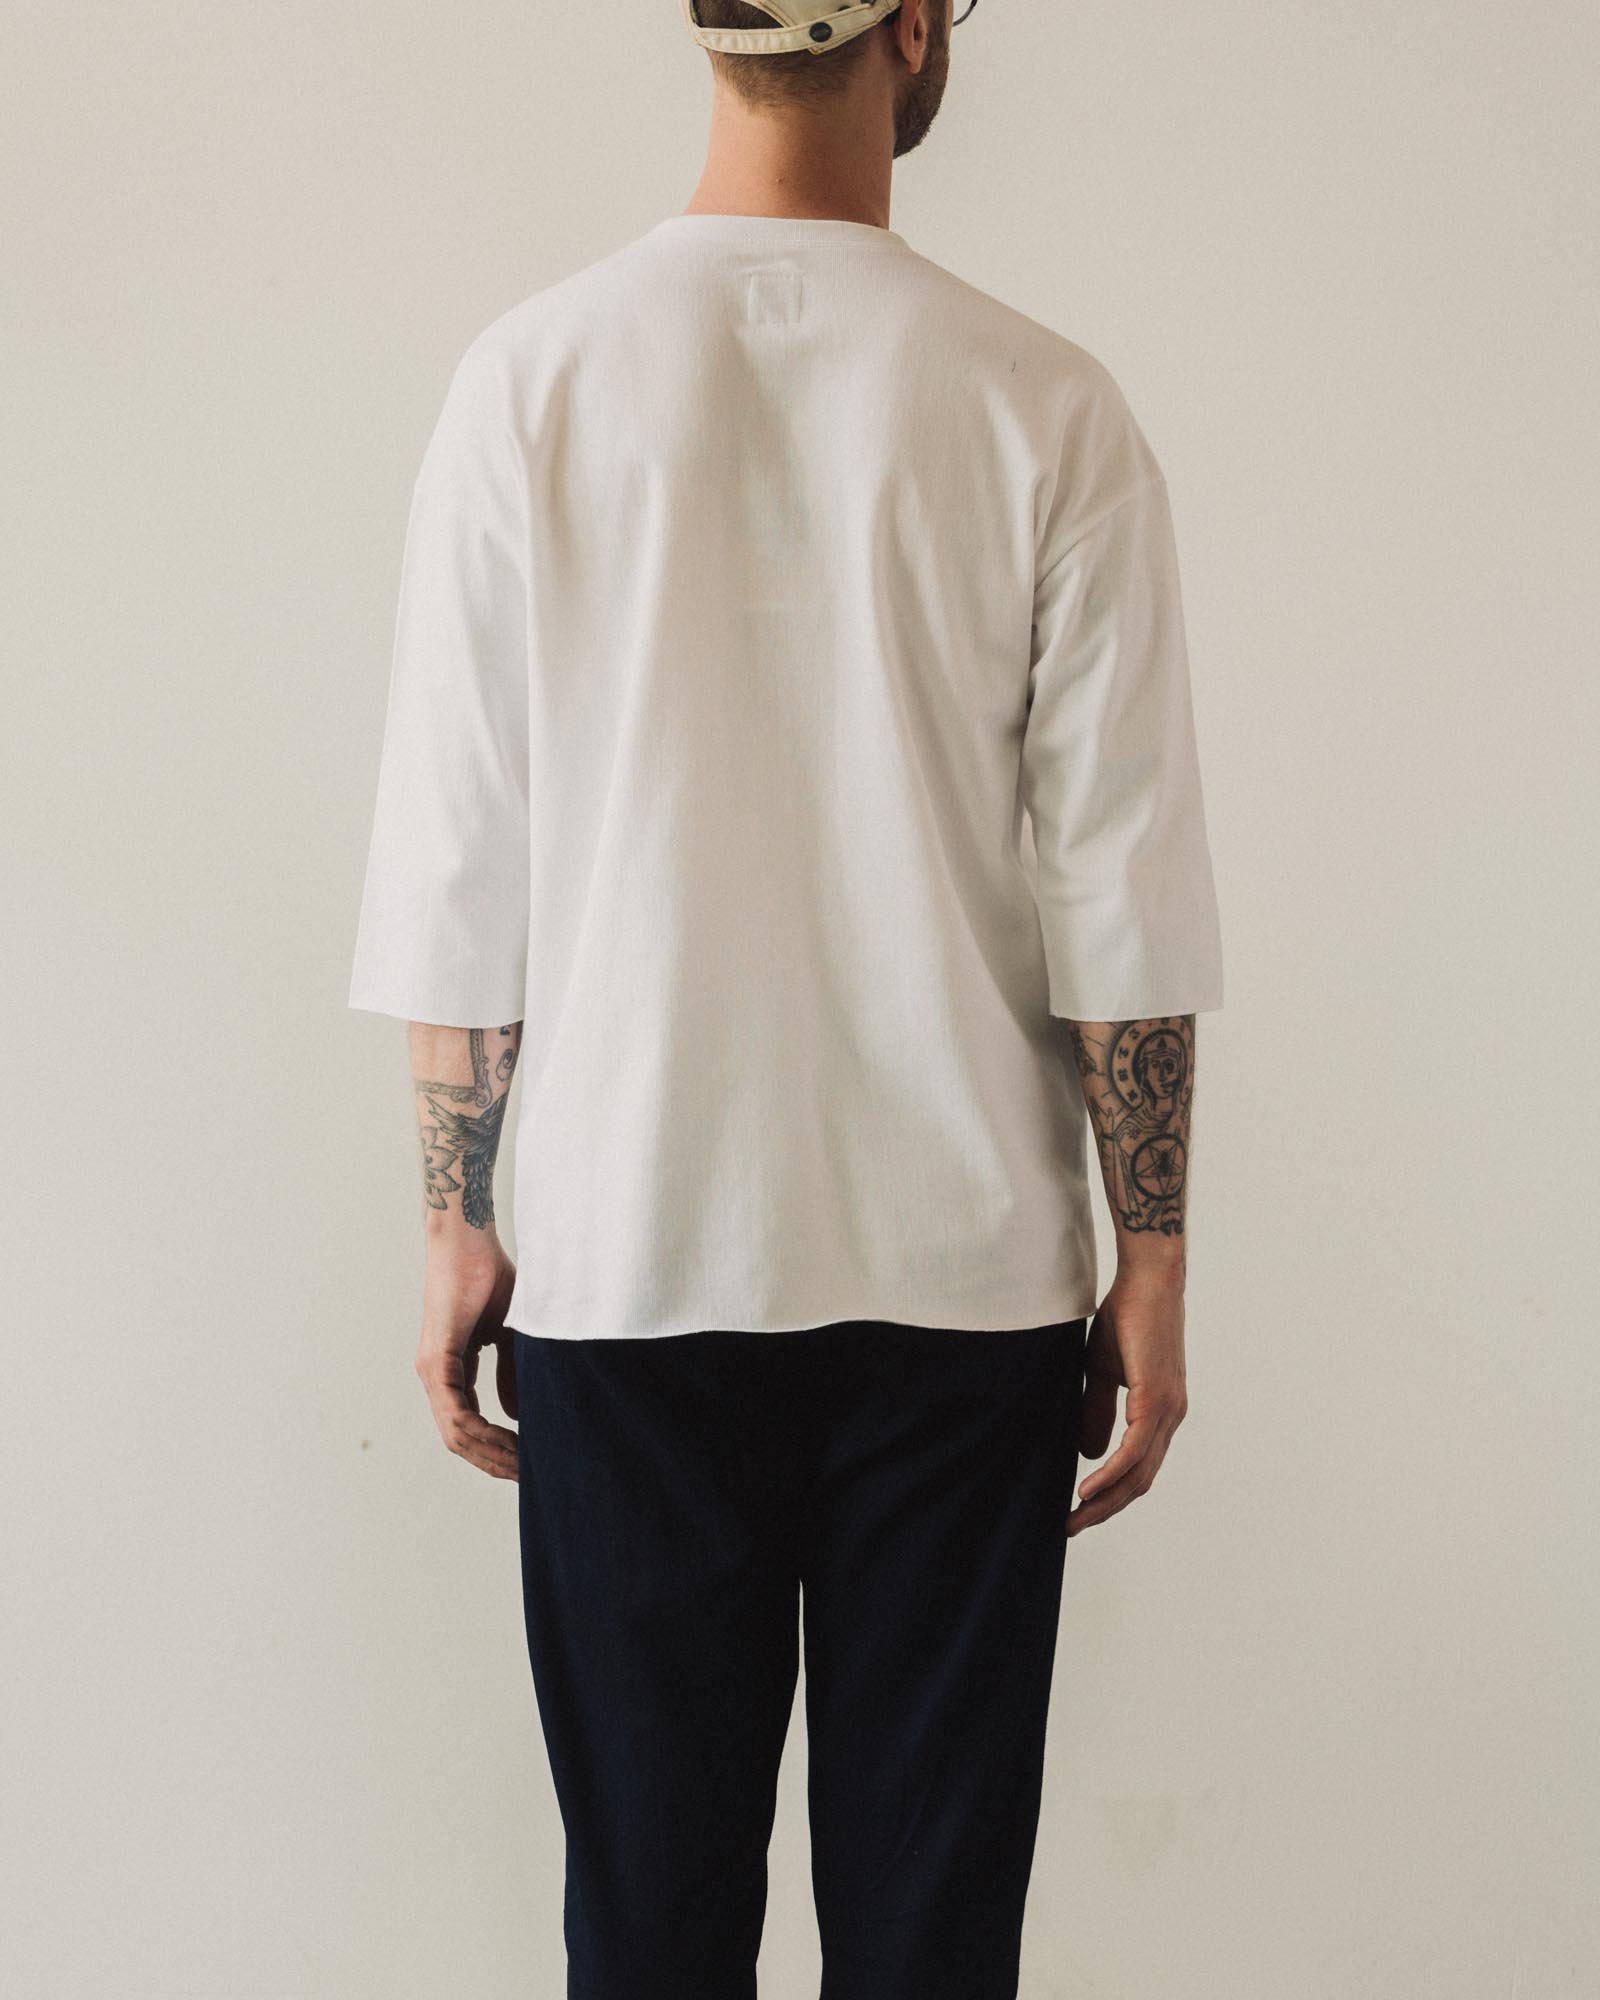 Arpenteur Mariniere Sweater, White